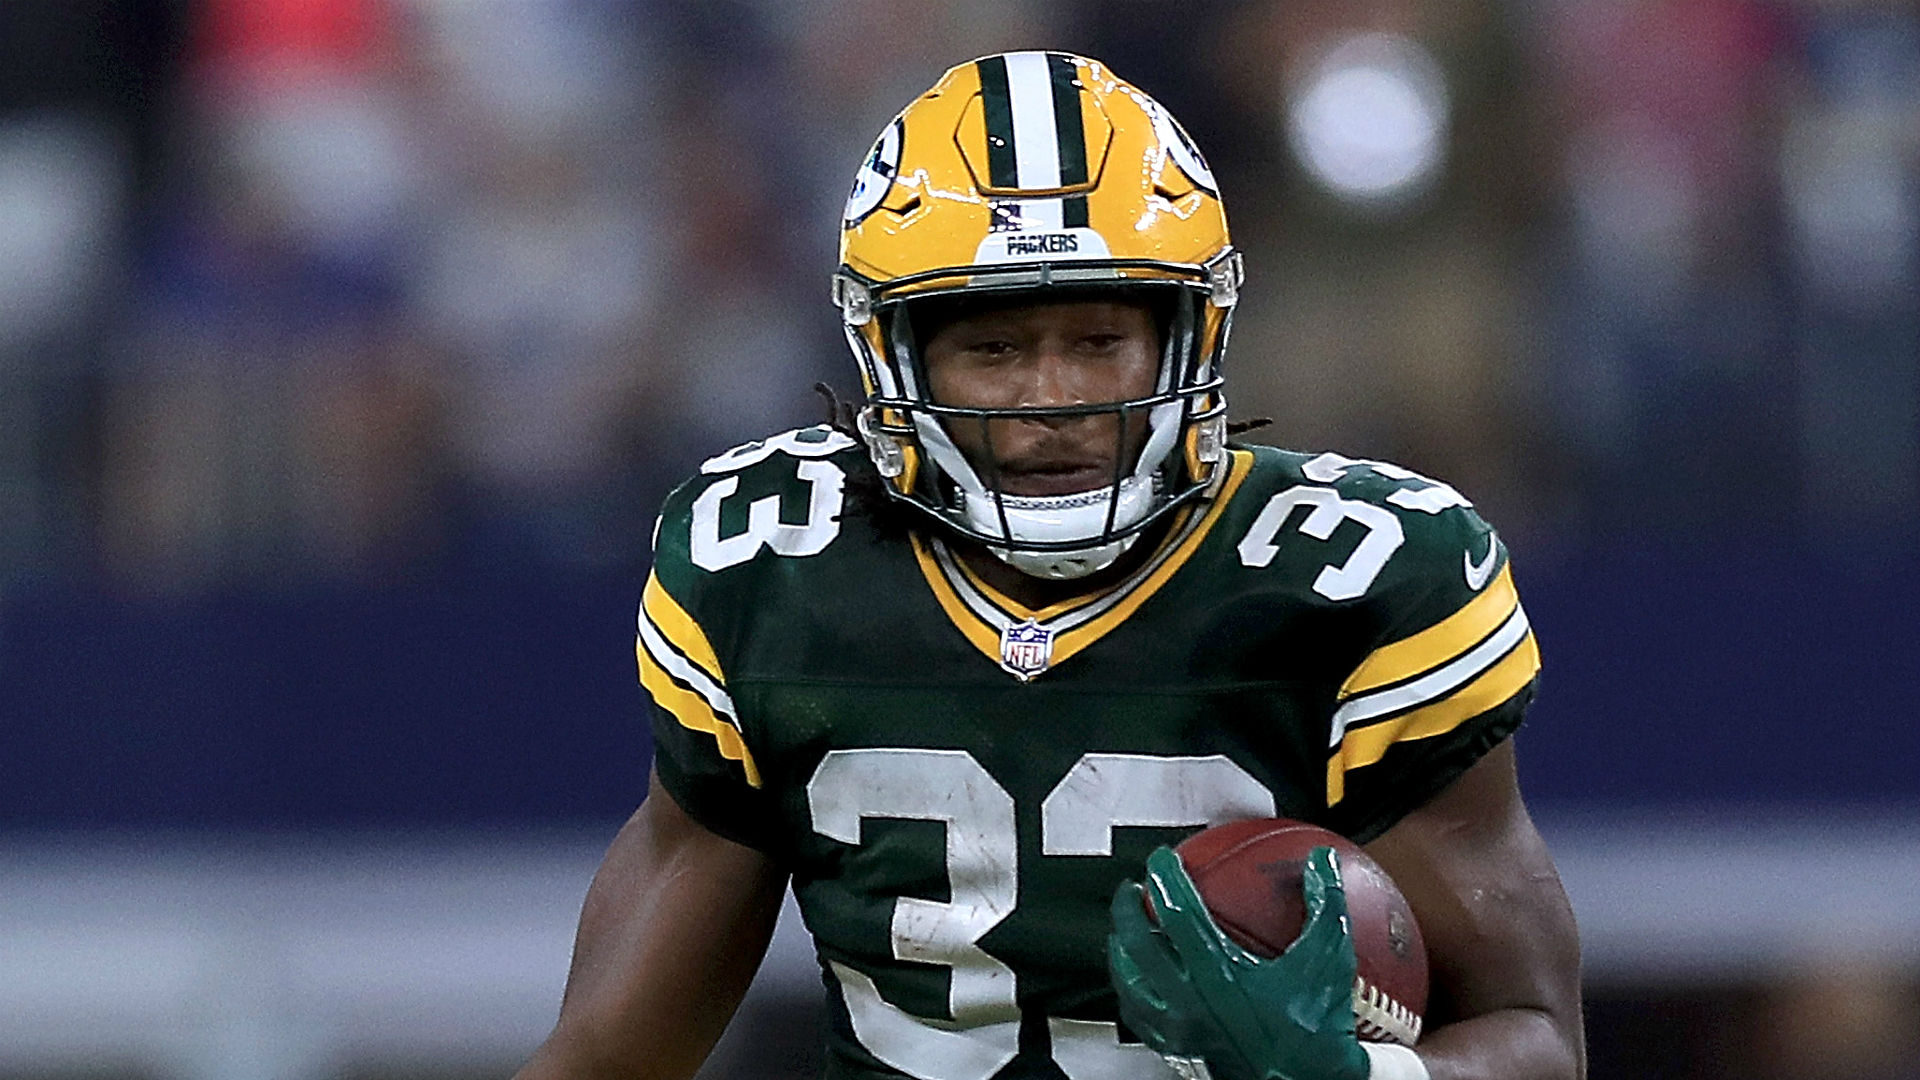 Aaron Jones Arrested in October on Multiple Charges, Admitted Smoking Marijuana